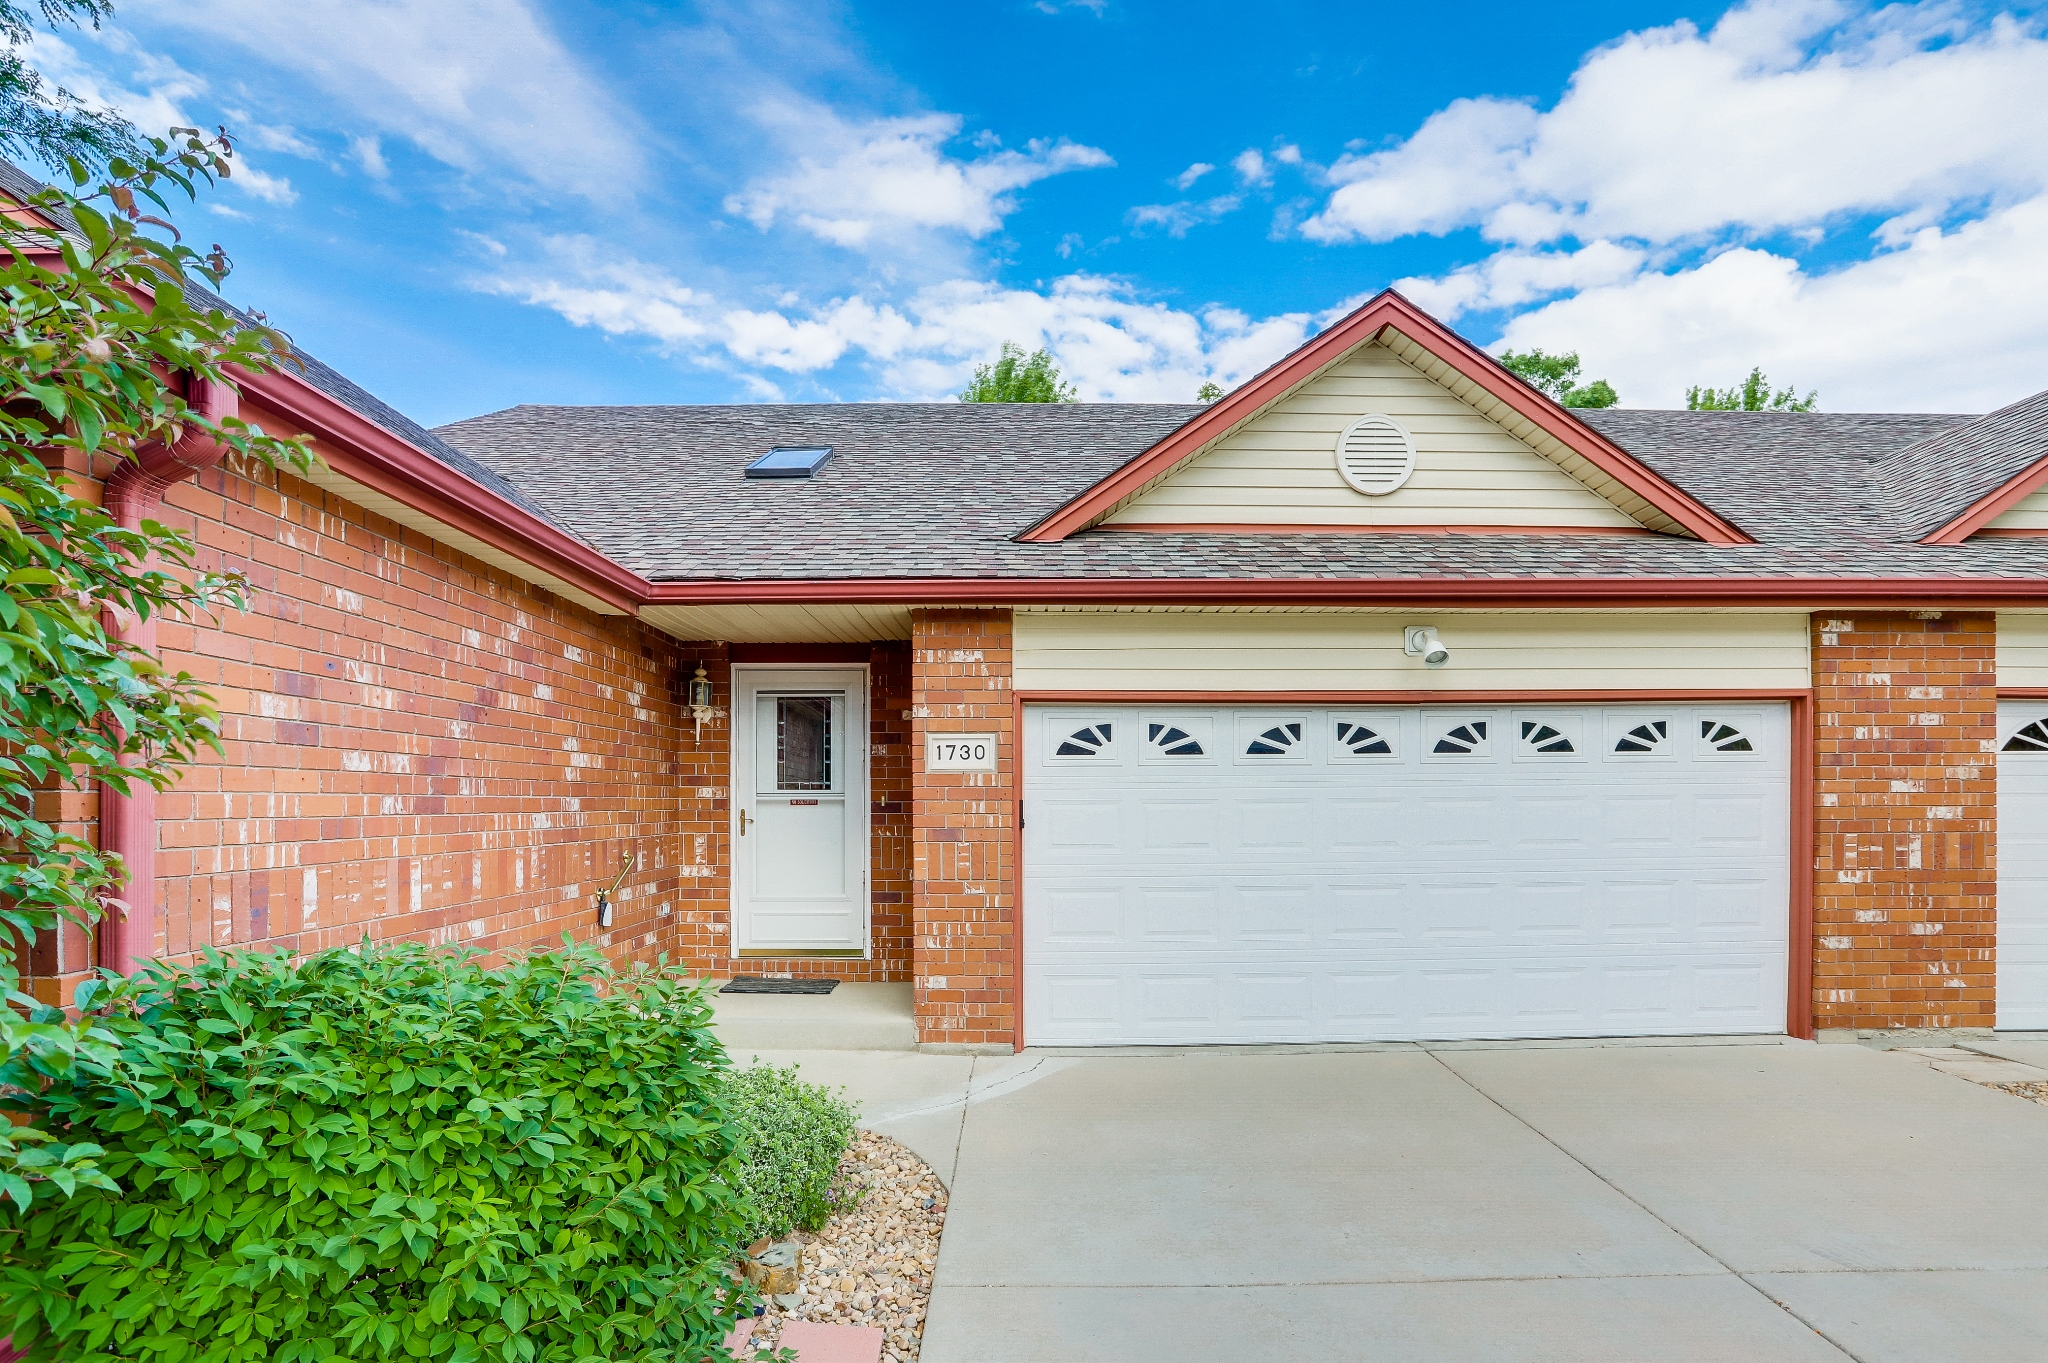 REAL ESTATE LISTING: 1730 Grove CT Longmont Front Exterior